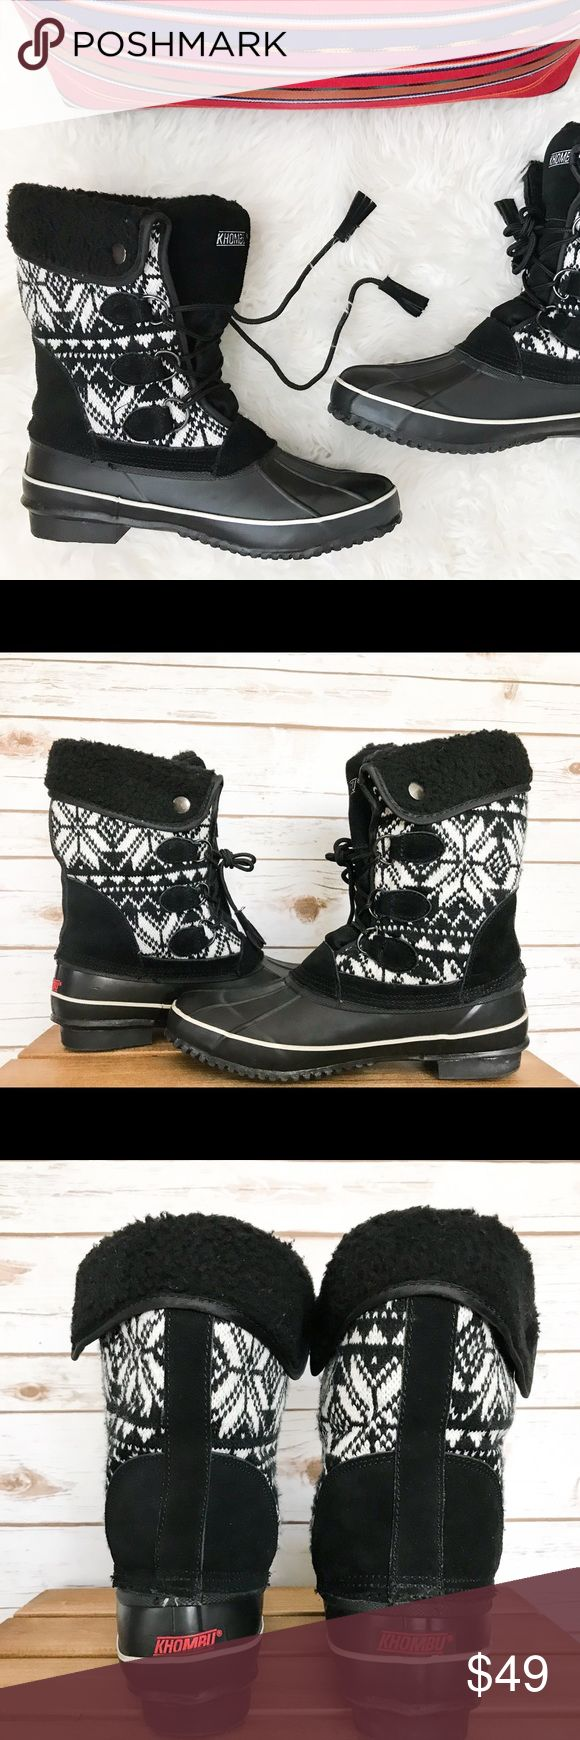 """KHOMBU Aztec Women's Leather Lace-Up Snow Boots These KHOMBU Aztec Women's Leather Snow Boots have to be the cutest boots around! You will love the print and coziness of these boots.   Details: Size: 10M Style: BW1645  Colors: Black/White Aztec Print. Leather/Fabric Upper. Balance man made materials. Faux Fur Lining. Synthetic sole. Lace-Up. Shaft height: 10"""" (H) Top opening circumference measures 13-15"""" depending how you lace them. Heel height: 0.34"""" (H)  Condition: In great pre-owned…"""